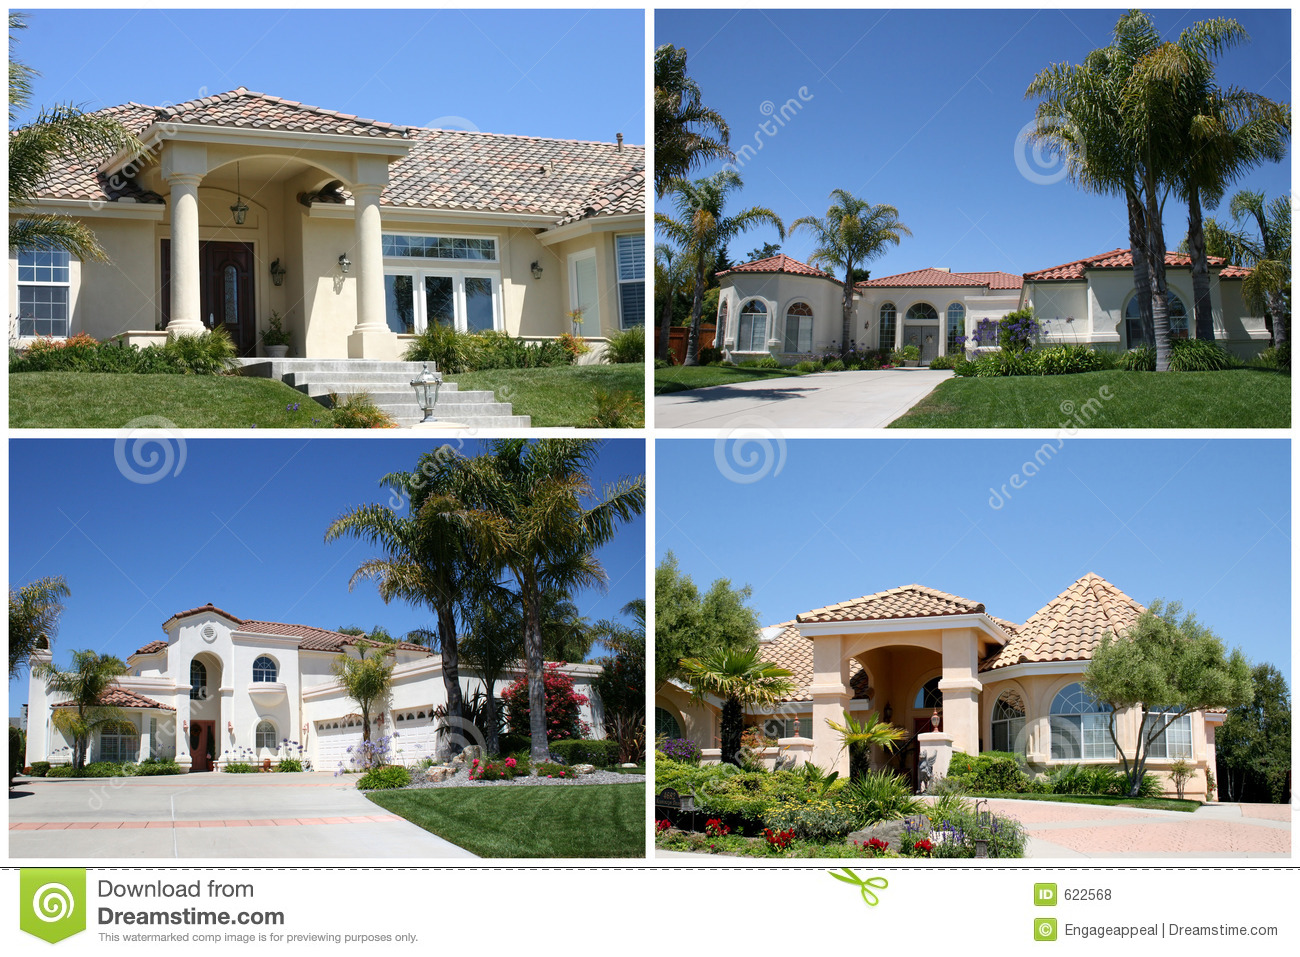 Luxury homes collage royalty free stock photos image 622568 for Free luxury home images